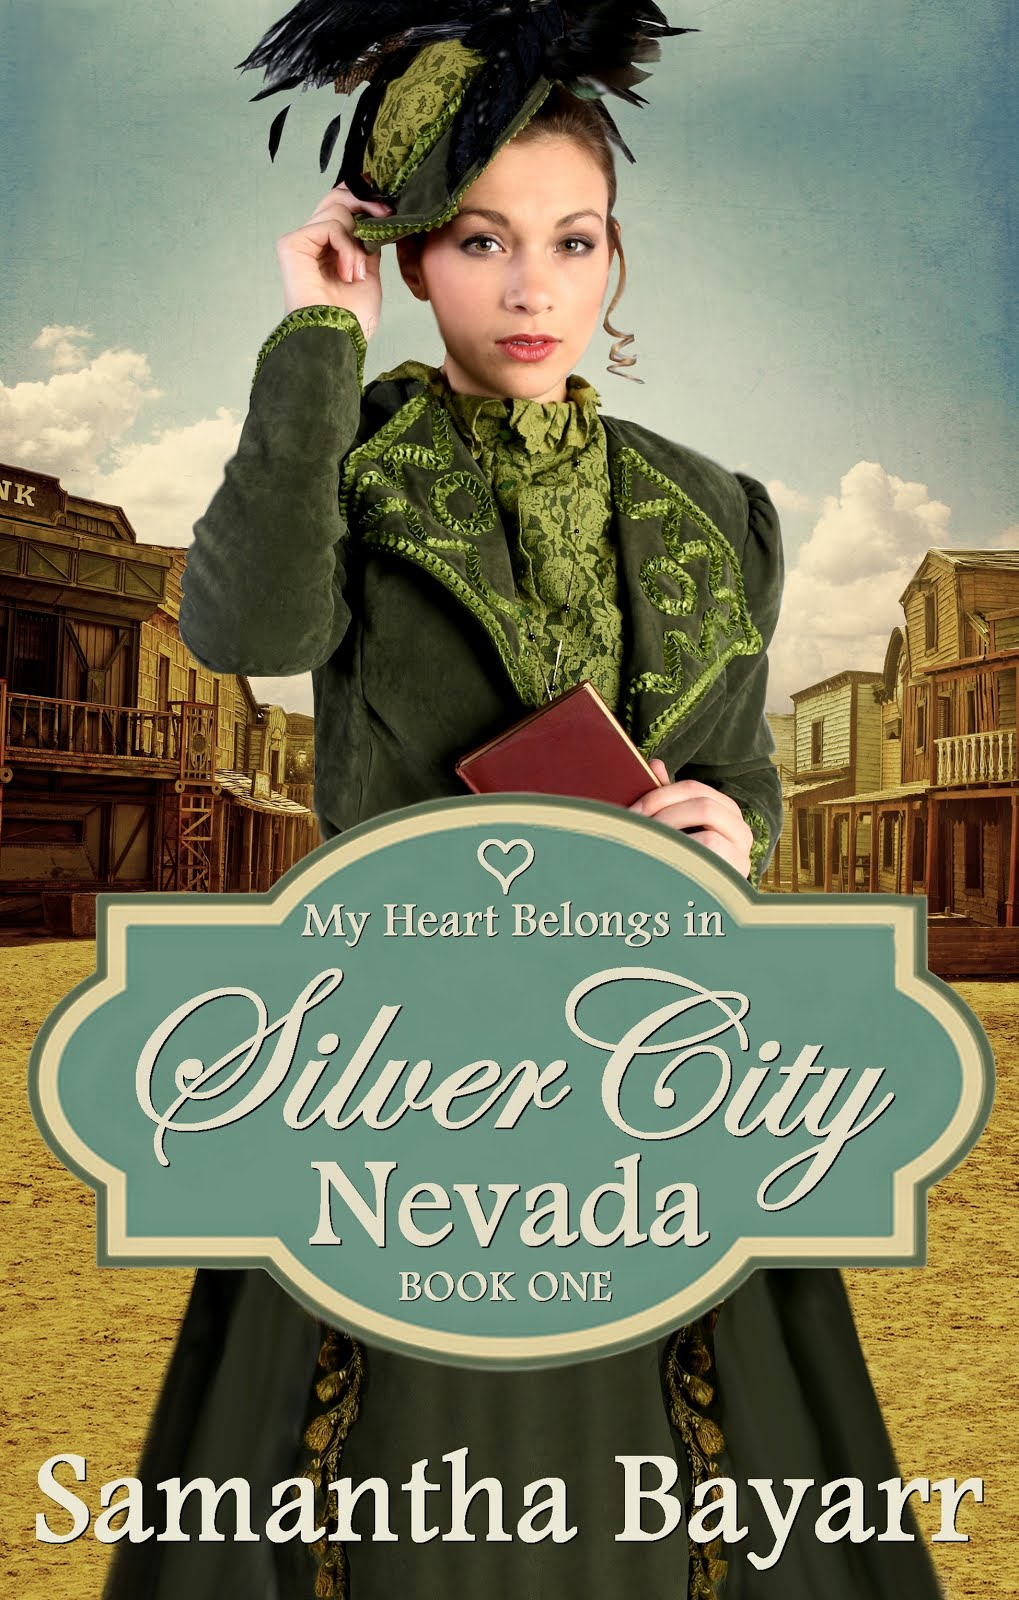 My Heart Belongs in Silver City, Nevada